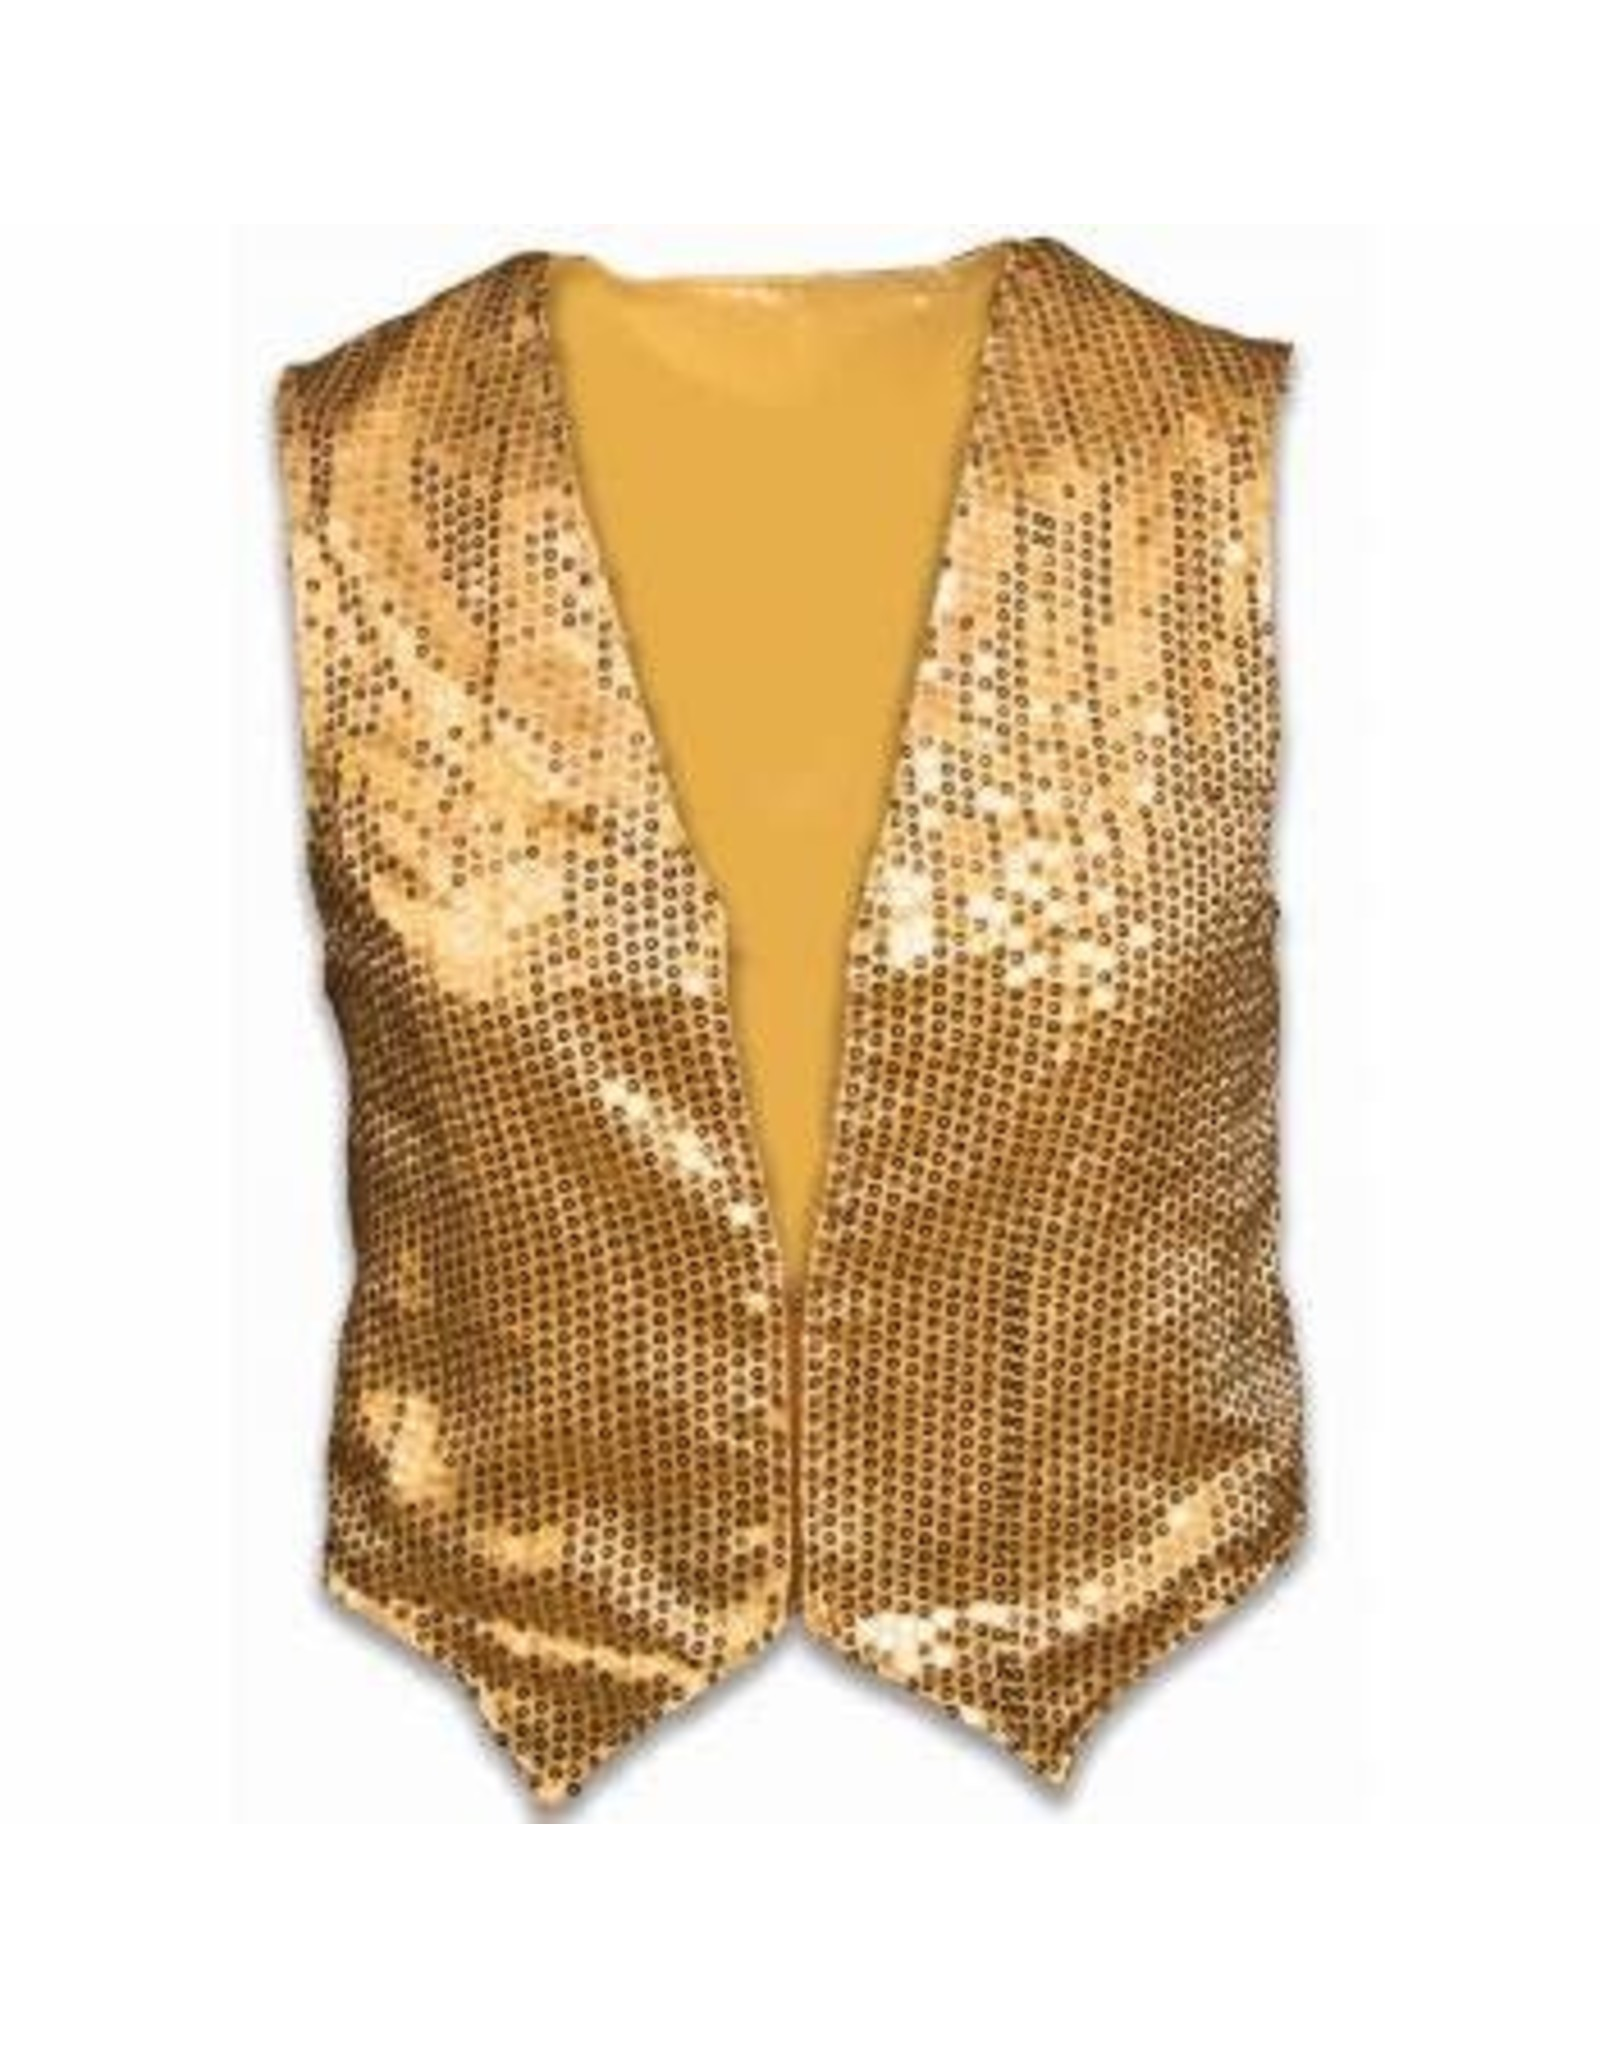 Forum Novelties Inc. Sequin Vest - Adults